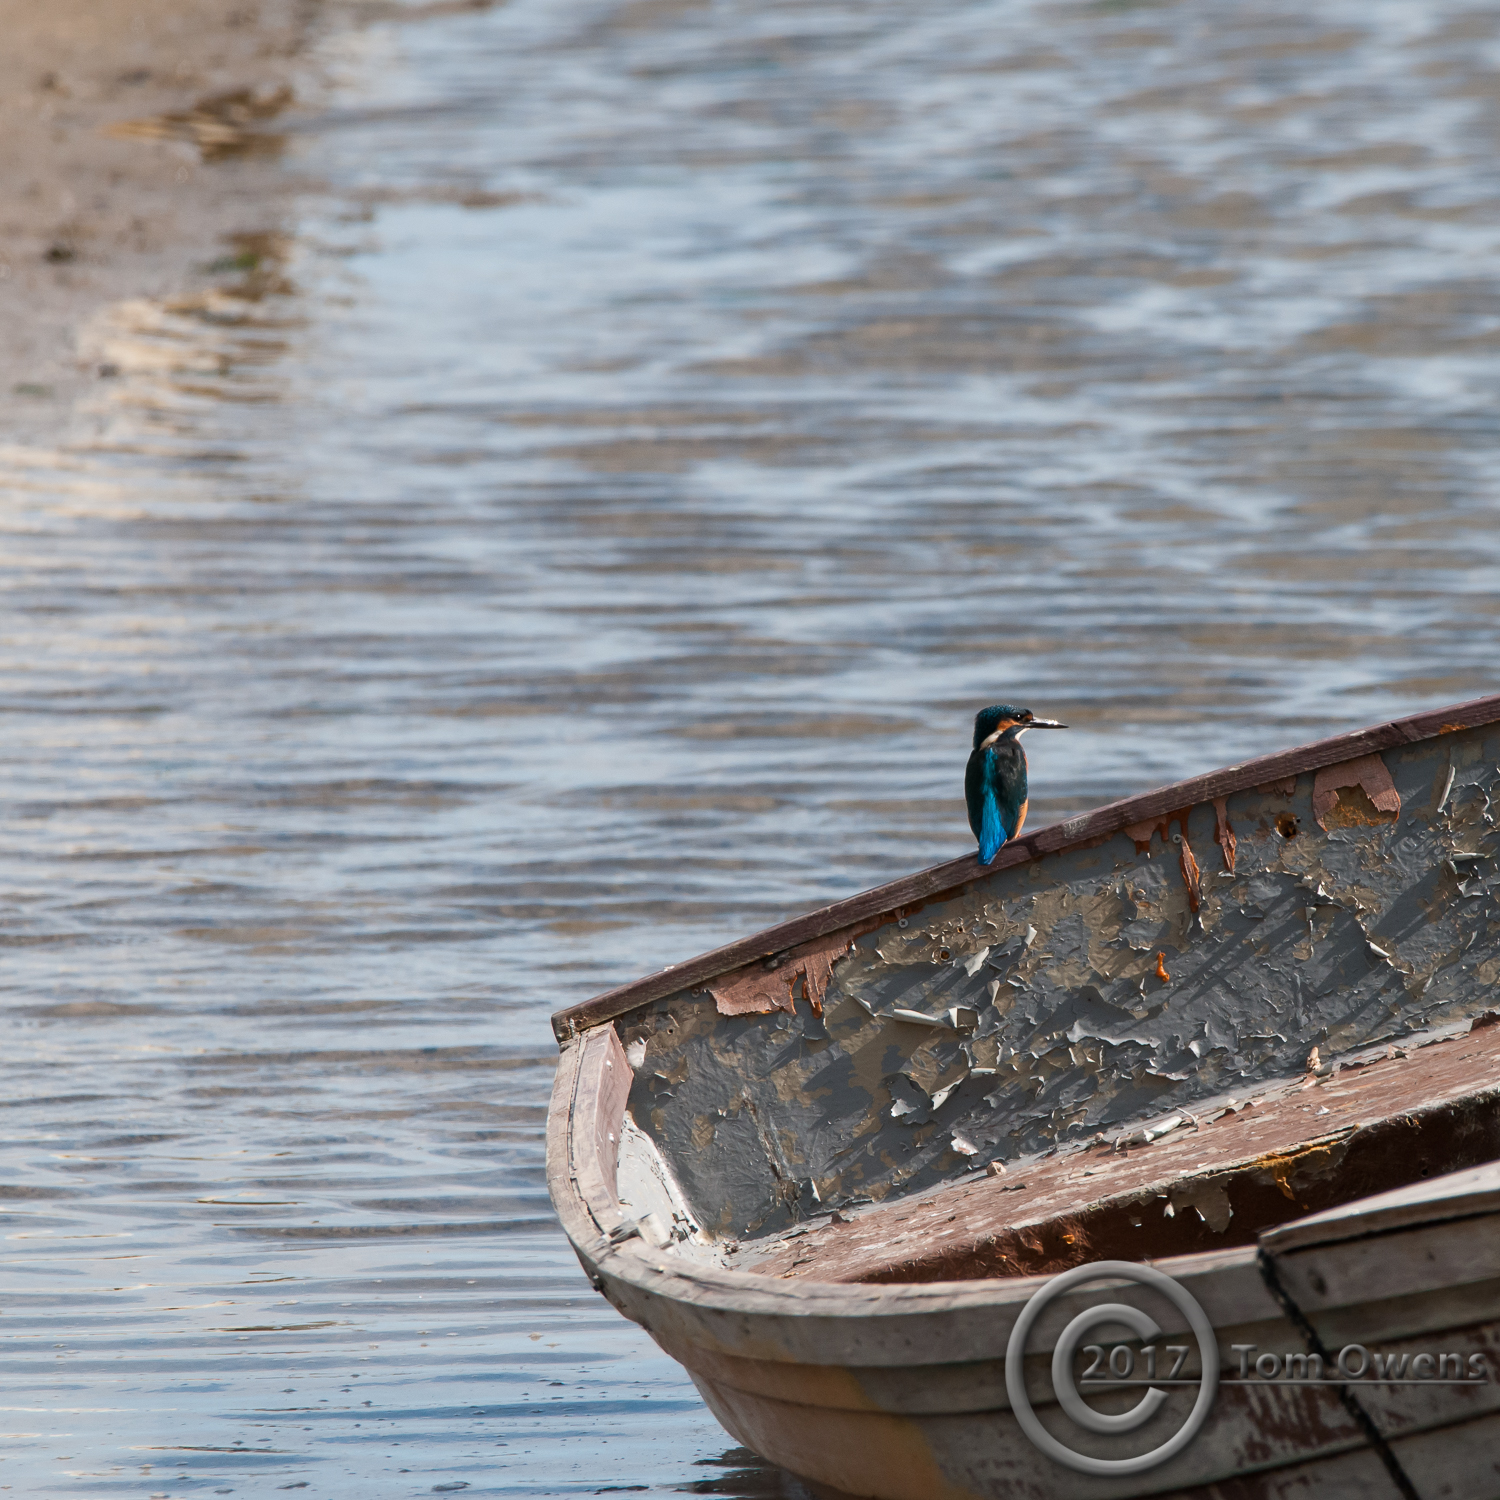 Male Kingfisher perched on transom of rowing boat